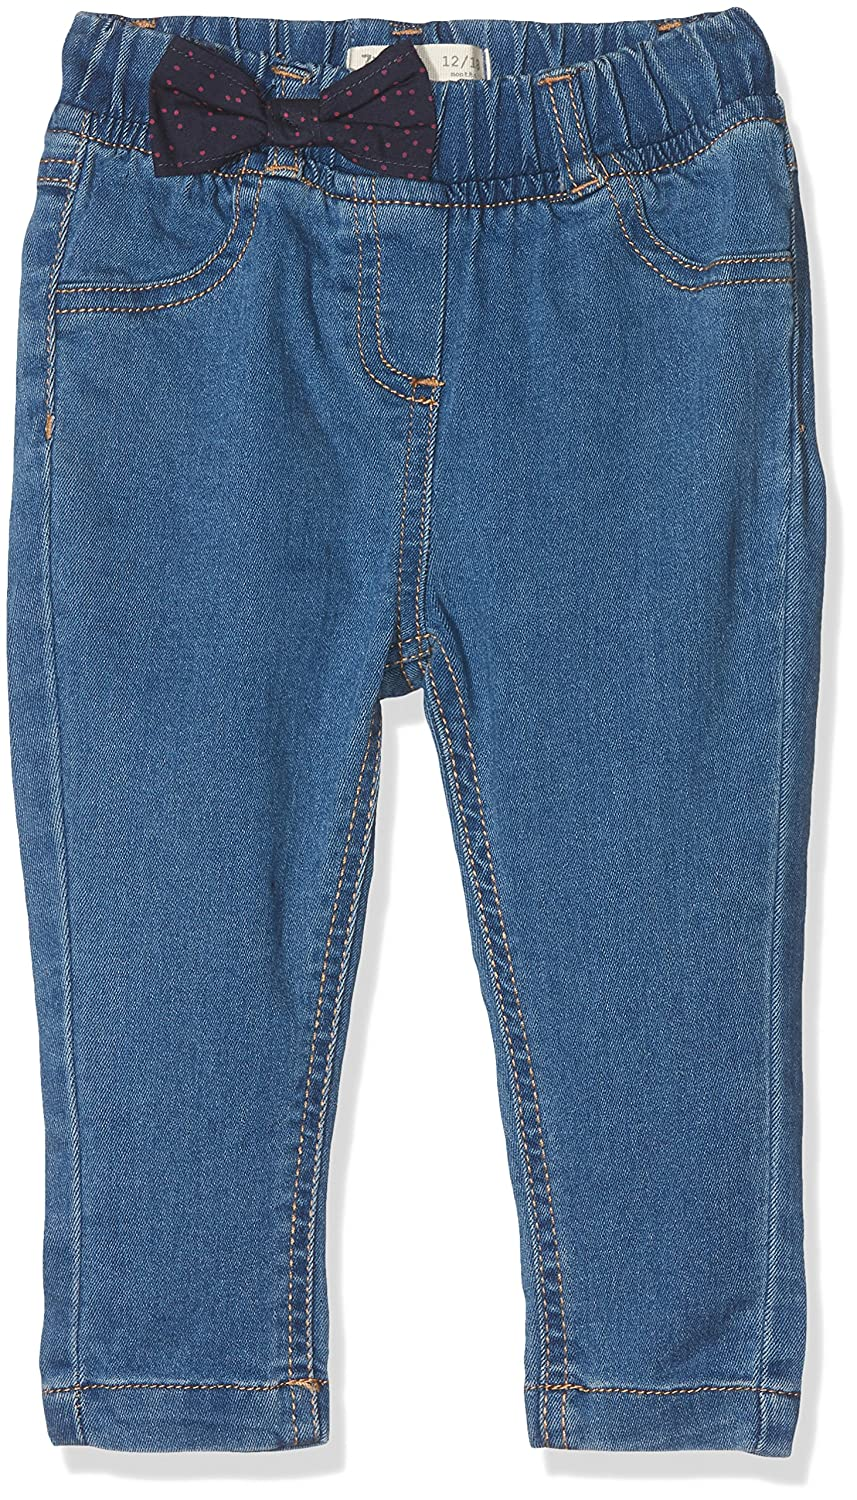 Zippy Jeans Bébé Fille Zippy Ztg23_410_3 Bleu (Medium Blue Denim)